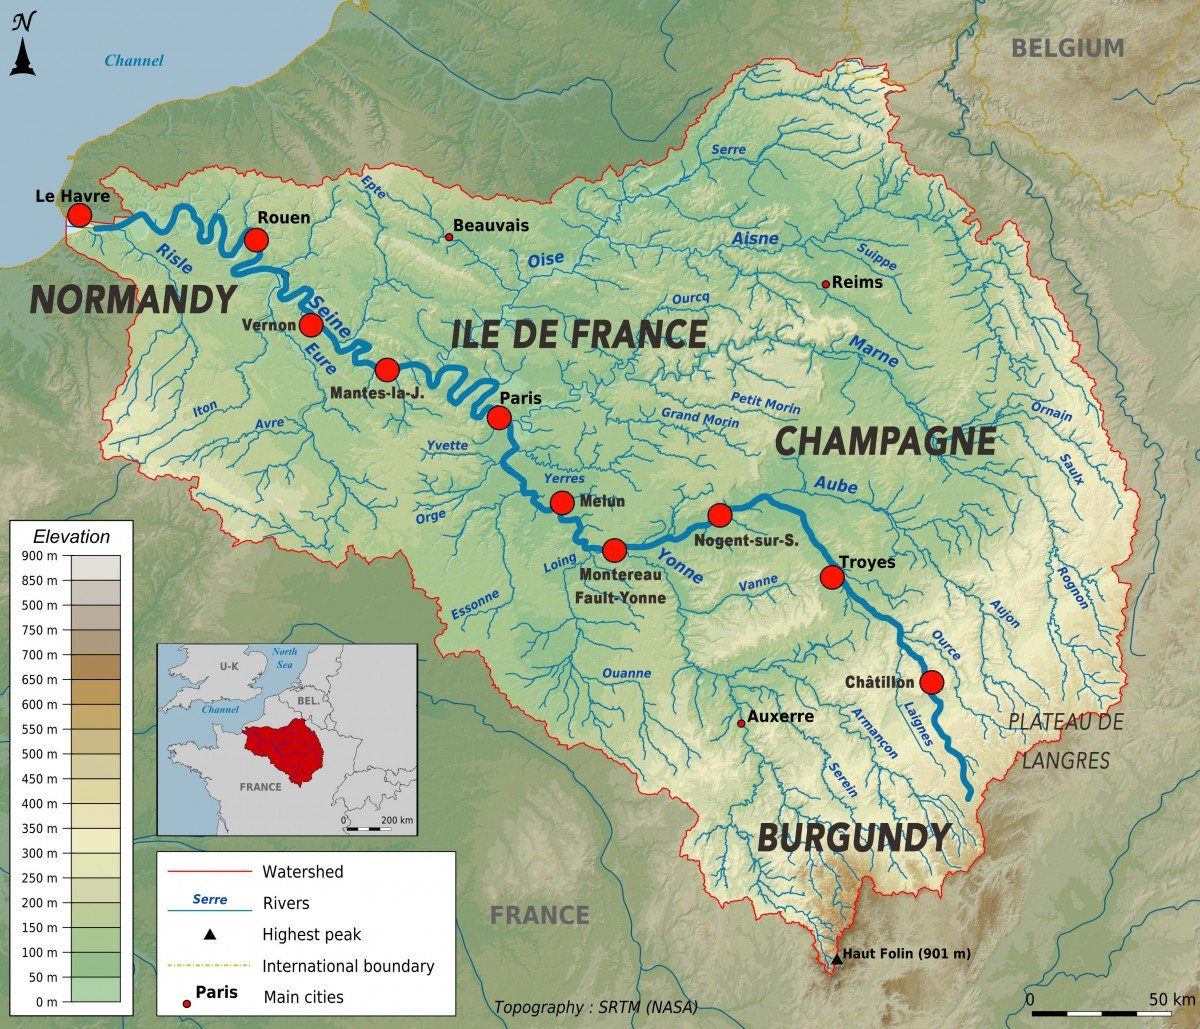 Topographic map of the Seine basin © Paul Passy - licence [CC BY-SA 3.0] from Wikimedia Commons